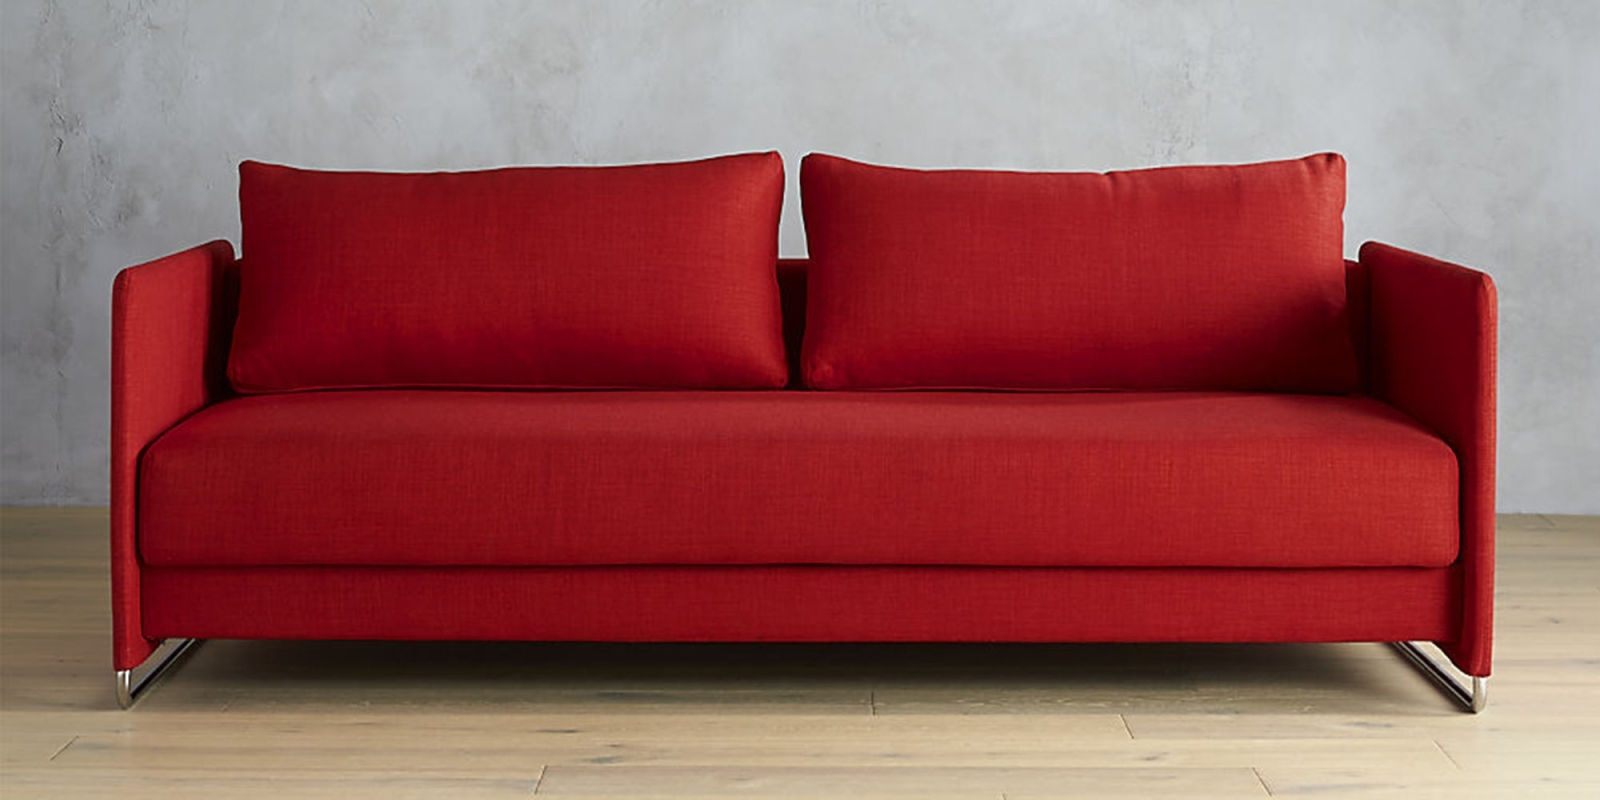 Preferred Red Sleeper Sofas With Appealing Design Ideas Of Best Sleeper Sofas (View 11 of 15)